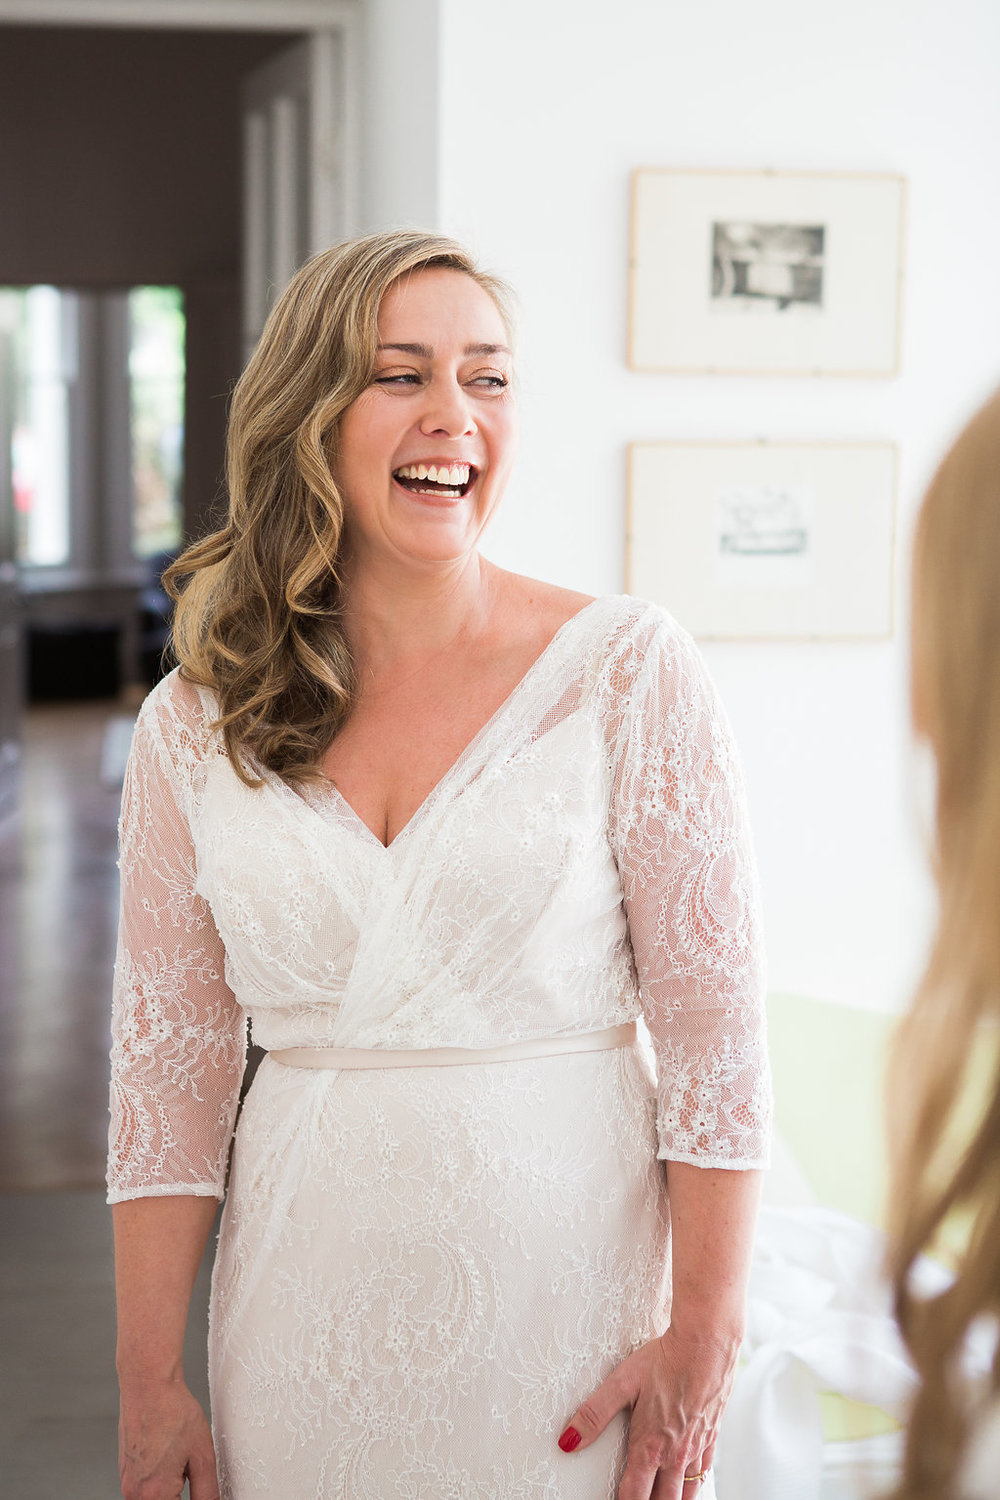 Beautiful bride Elizabeth wore a wedding gown by Halfpenny London